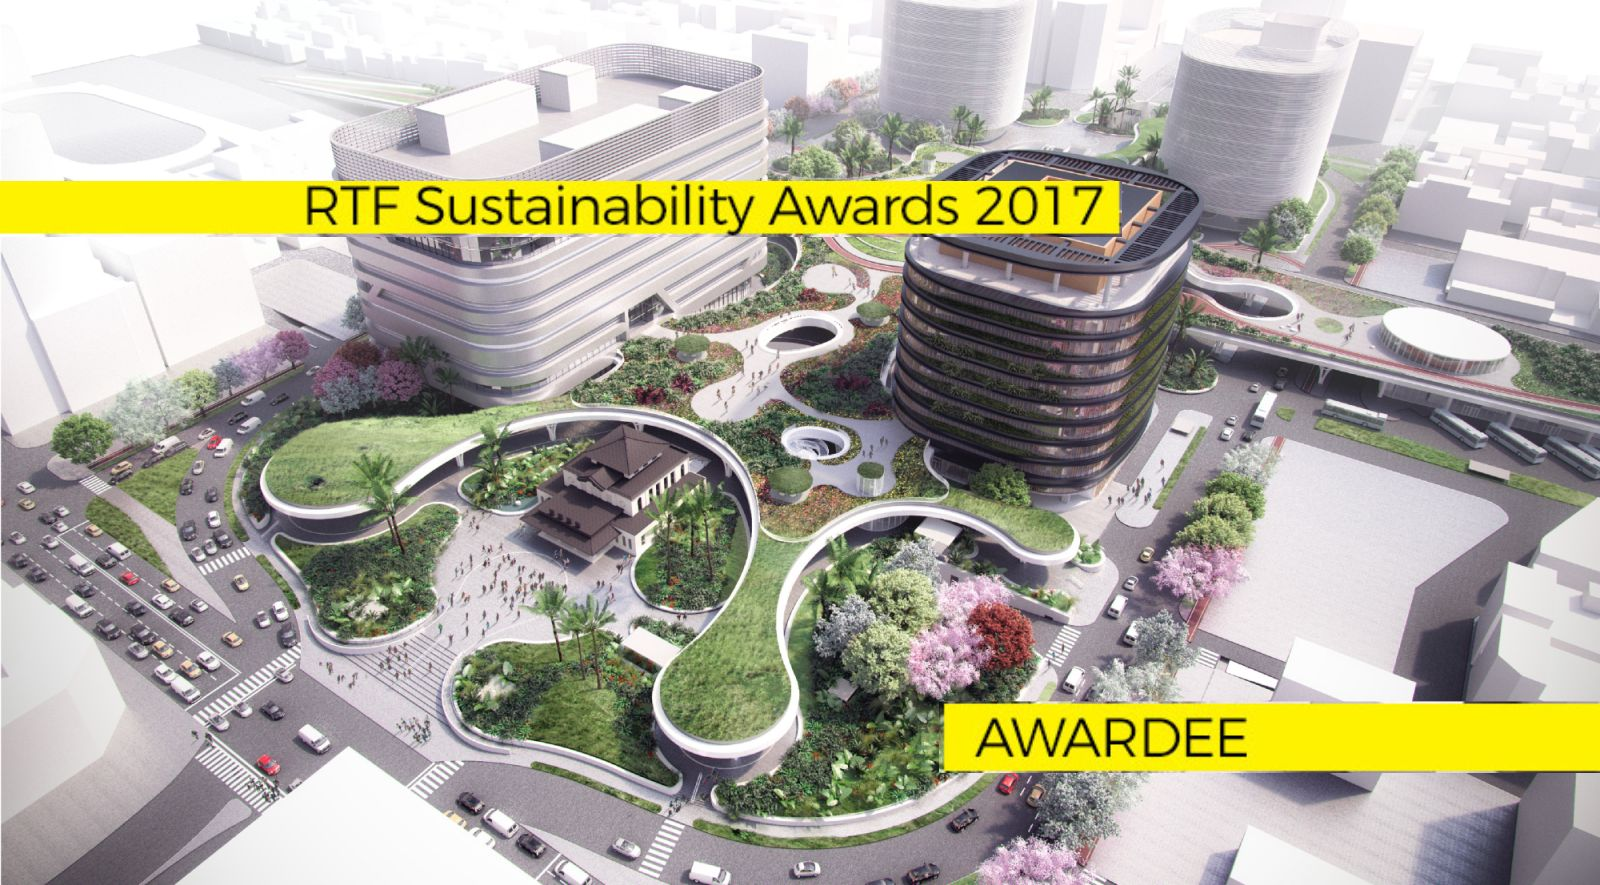 RTF Sustainability Awards